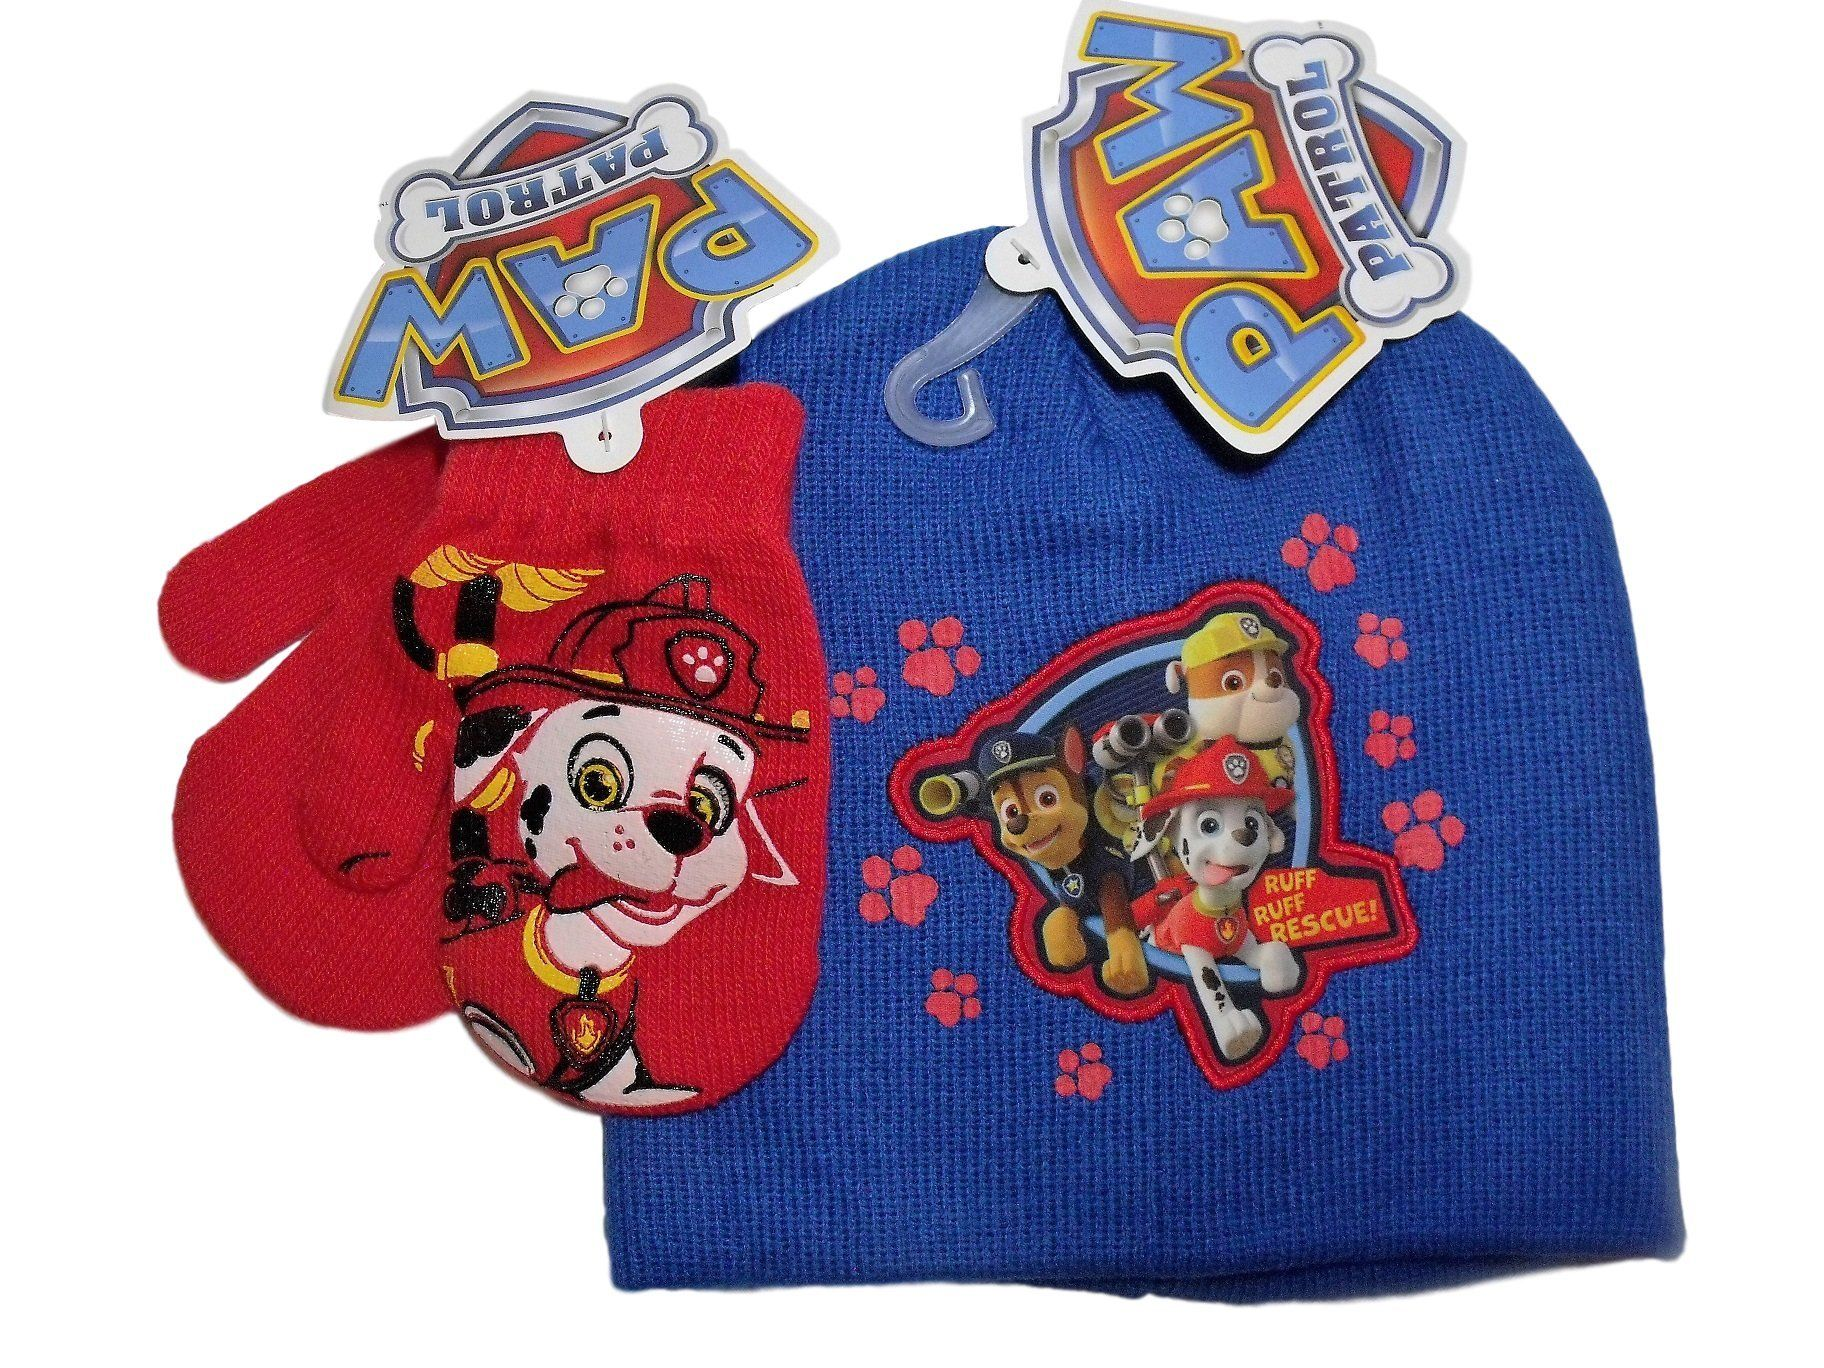 3be6c339ef4 Paw Patrol Blue with Red Footprints Knit Beanie Hat Red Mittens Set. Boys  cold weather set  knit beanie hat   matching gloves. Blue with red  footprints knit ...